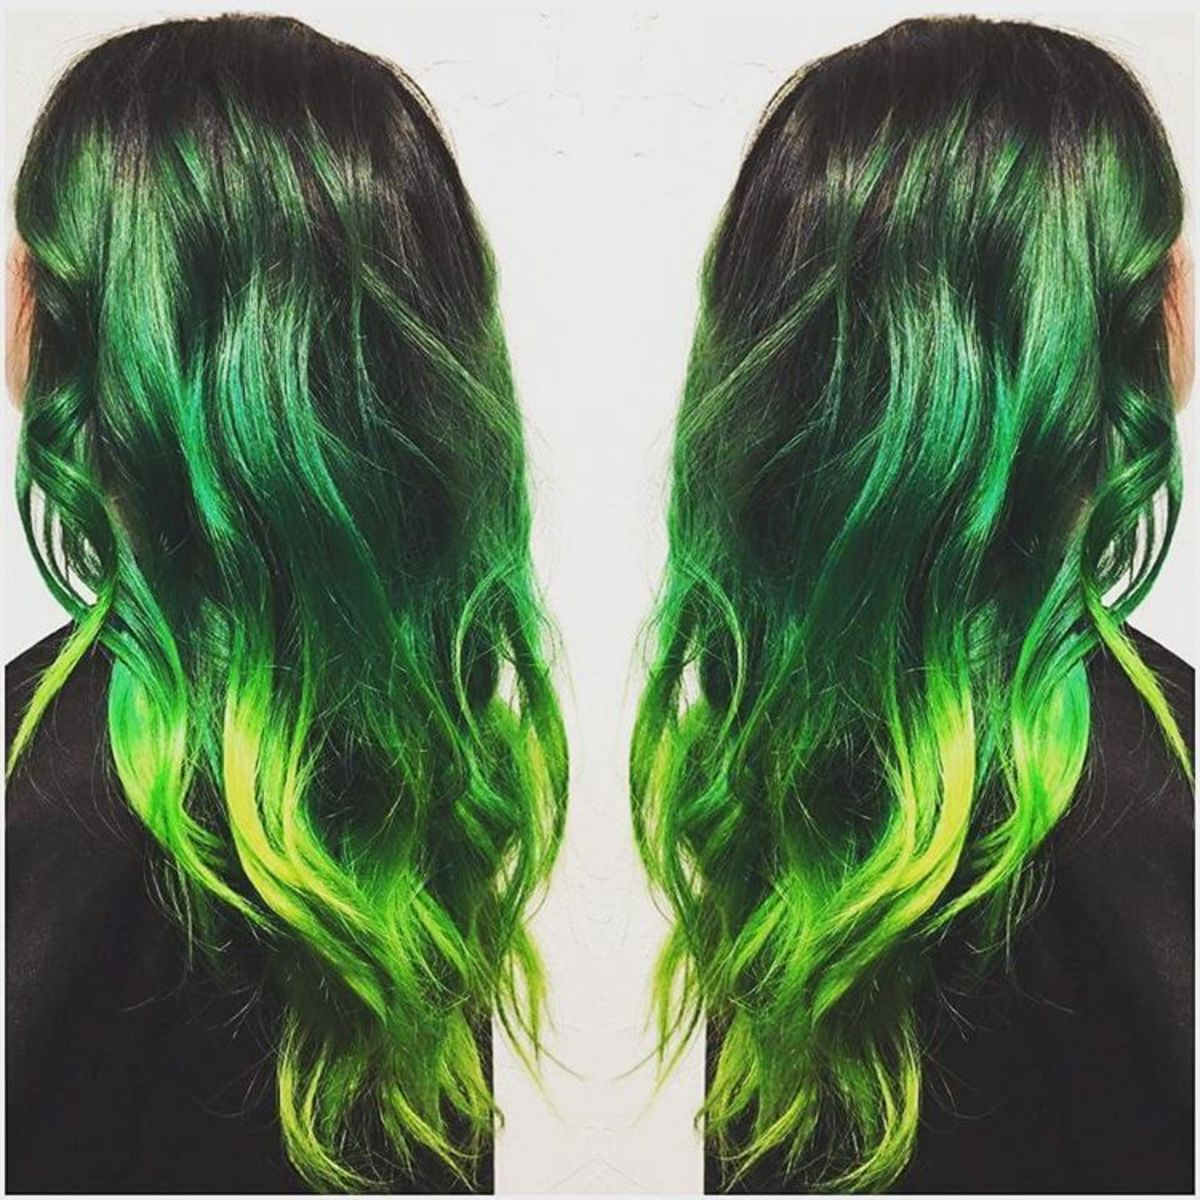 hair-diy-5-ideas-for-green-hair-and-how-to-do-them-at-home